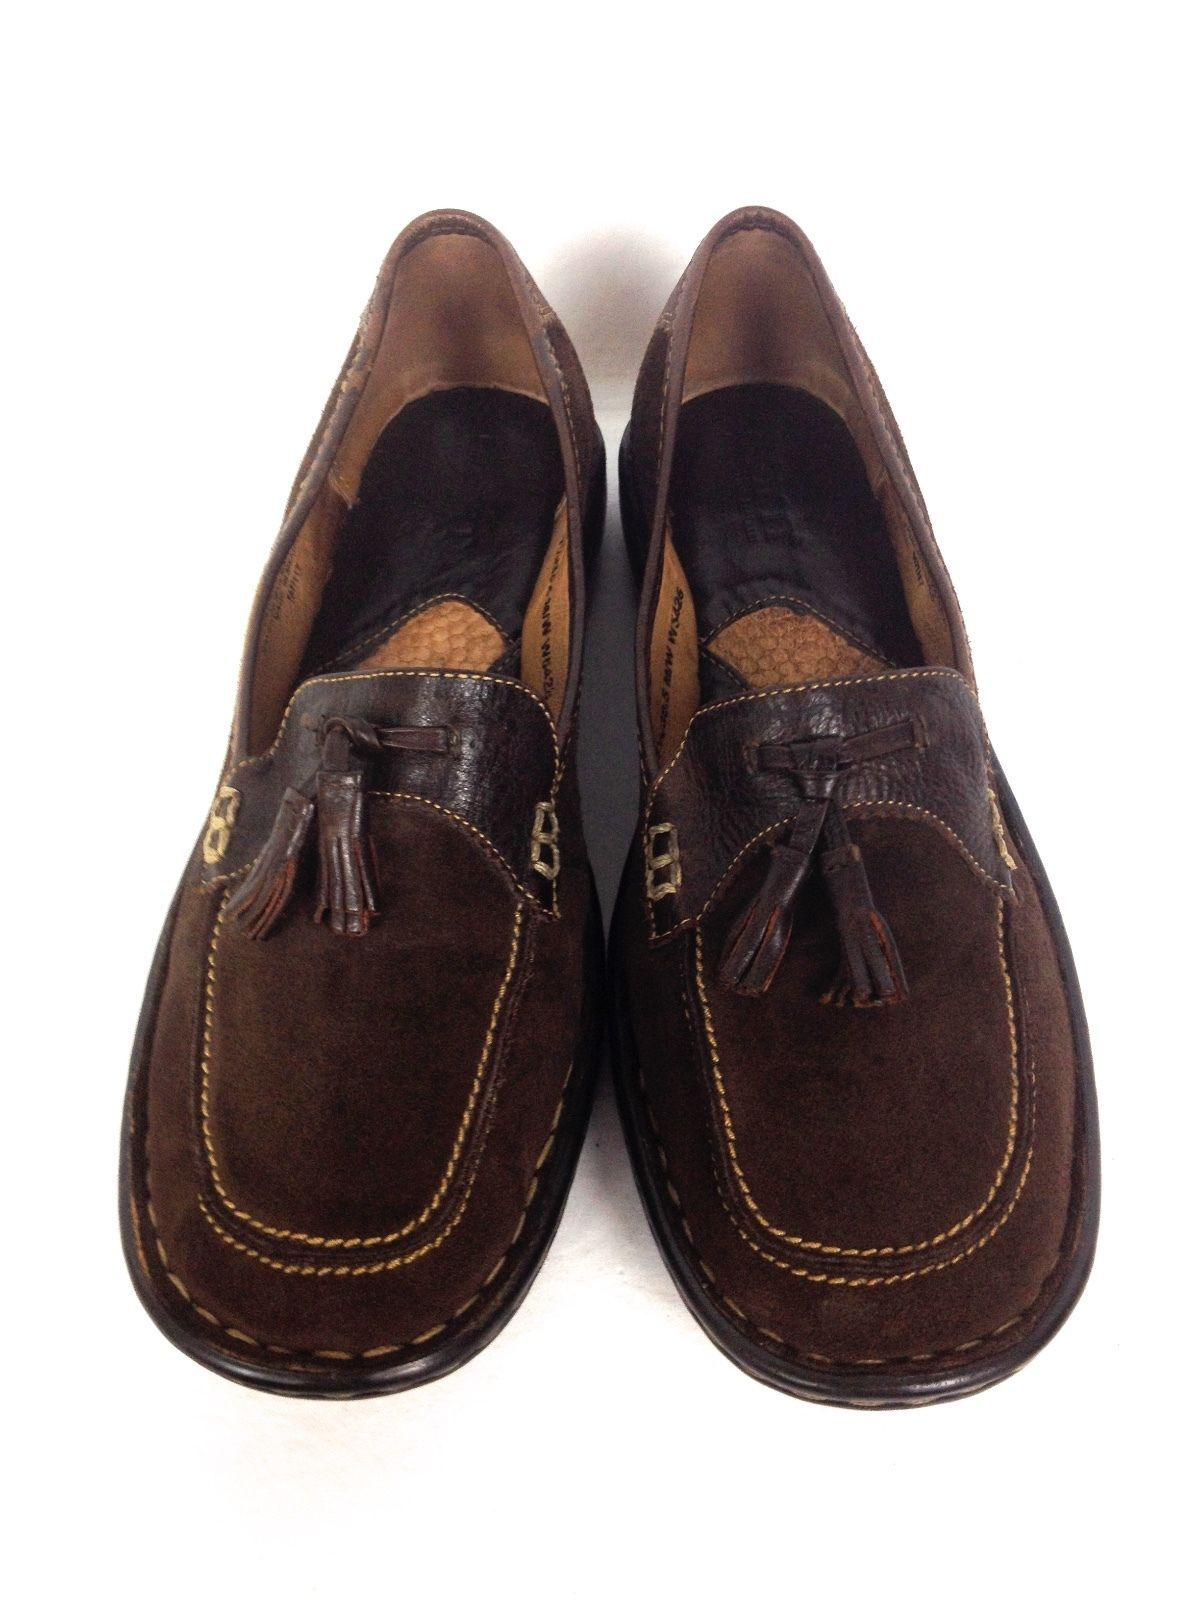 Free shipping BOTH ways on womens brown leather loafers, from our vast selection of styles. Fast delivery, and 24/7/ real-person service with a smile. Click or call